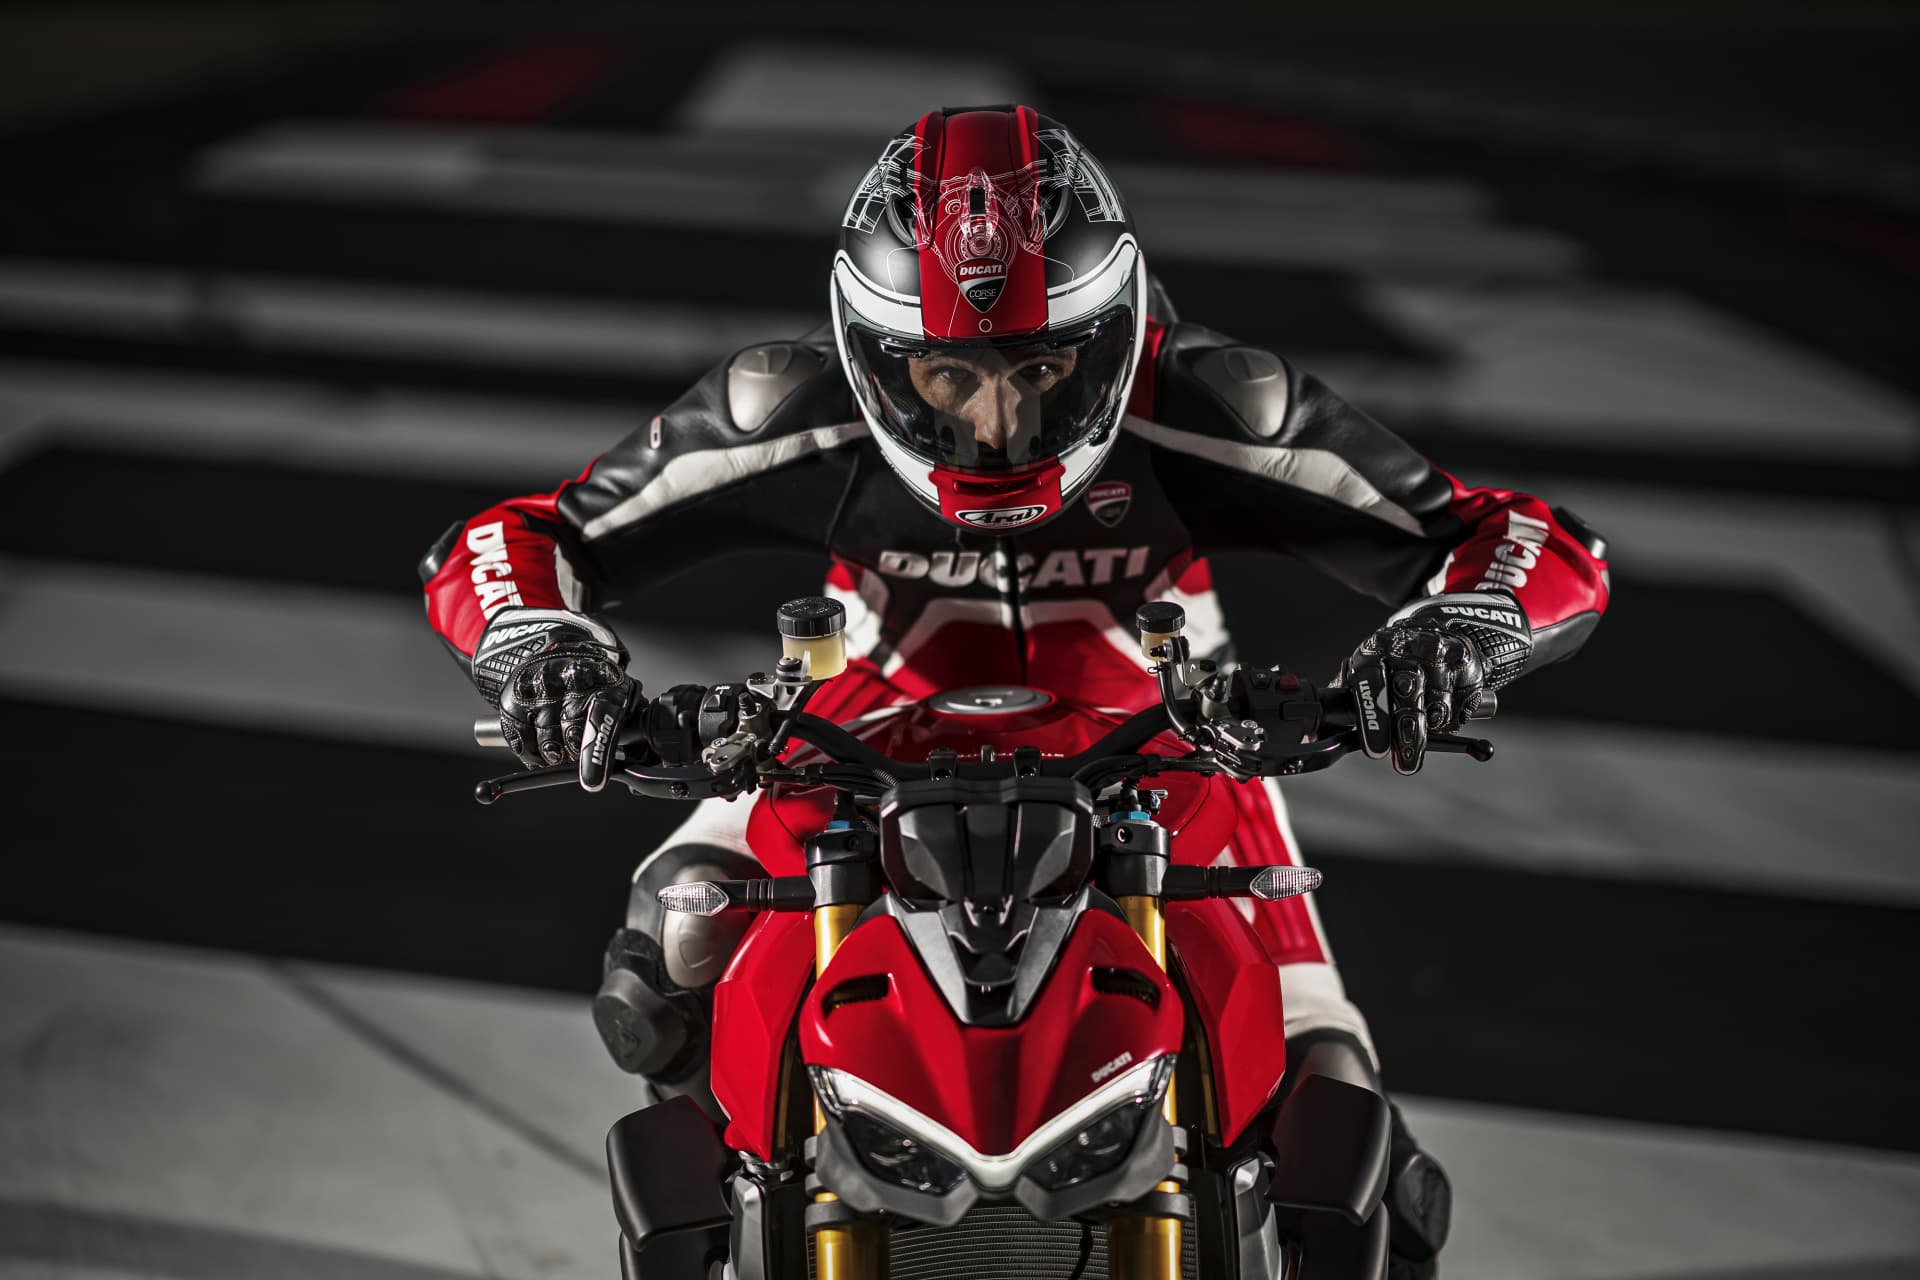 My20 Ducati Streetfighter V4 S Ambience 04 Uc101668 Mid